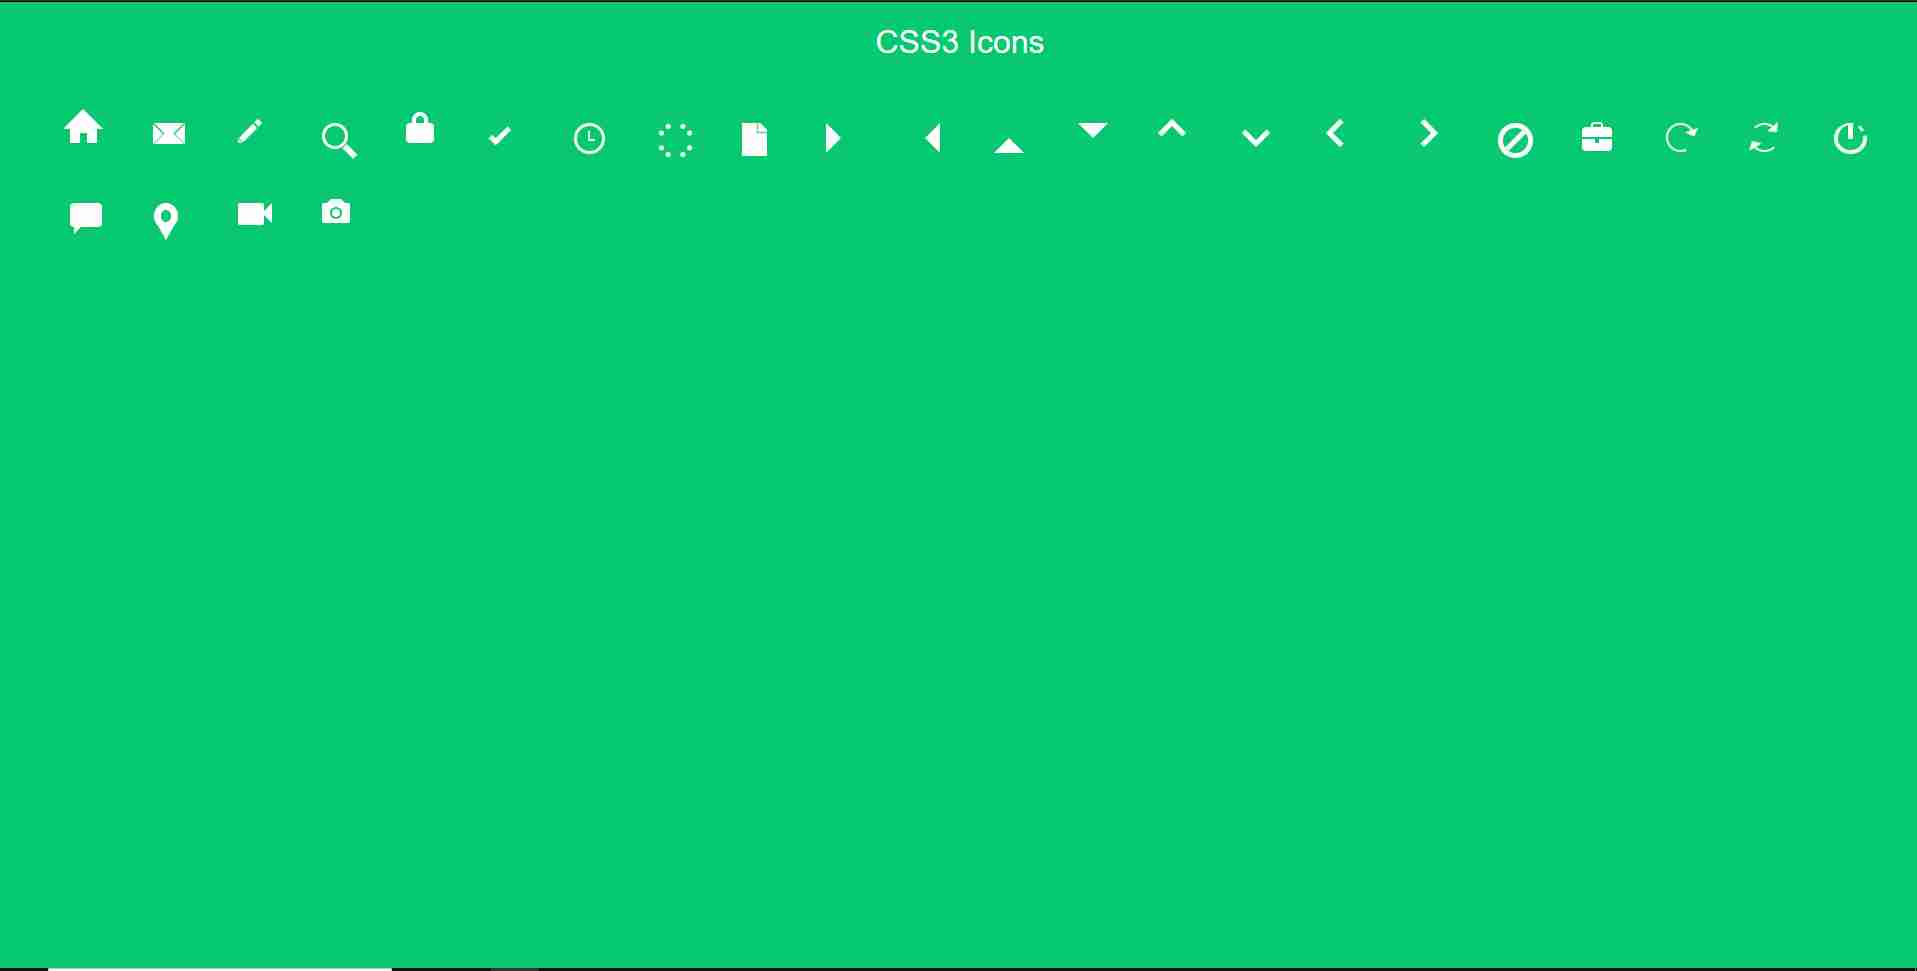 Create Footer with Social Media Icons & Links in HTML CSS